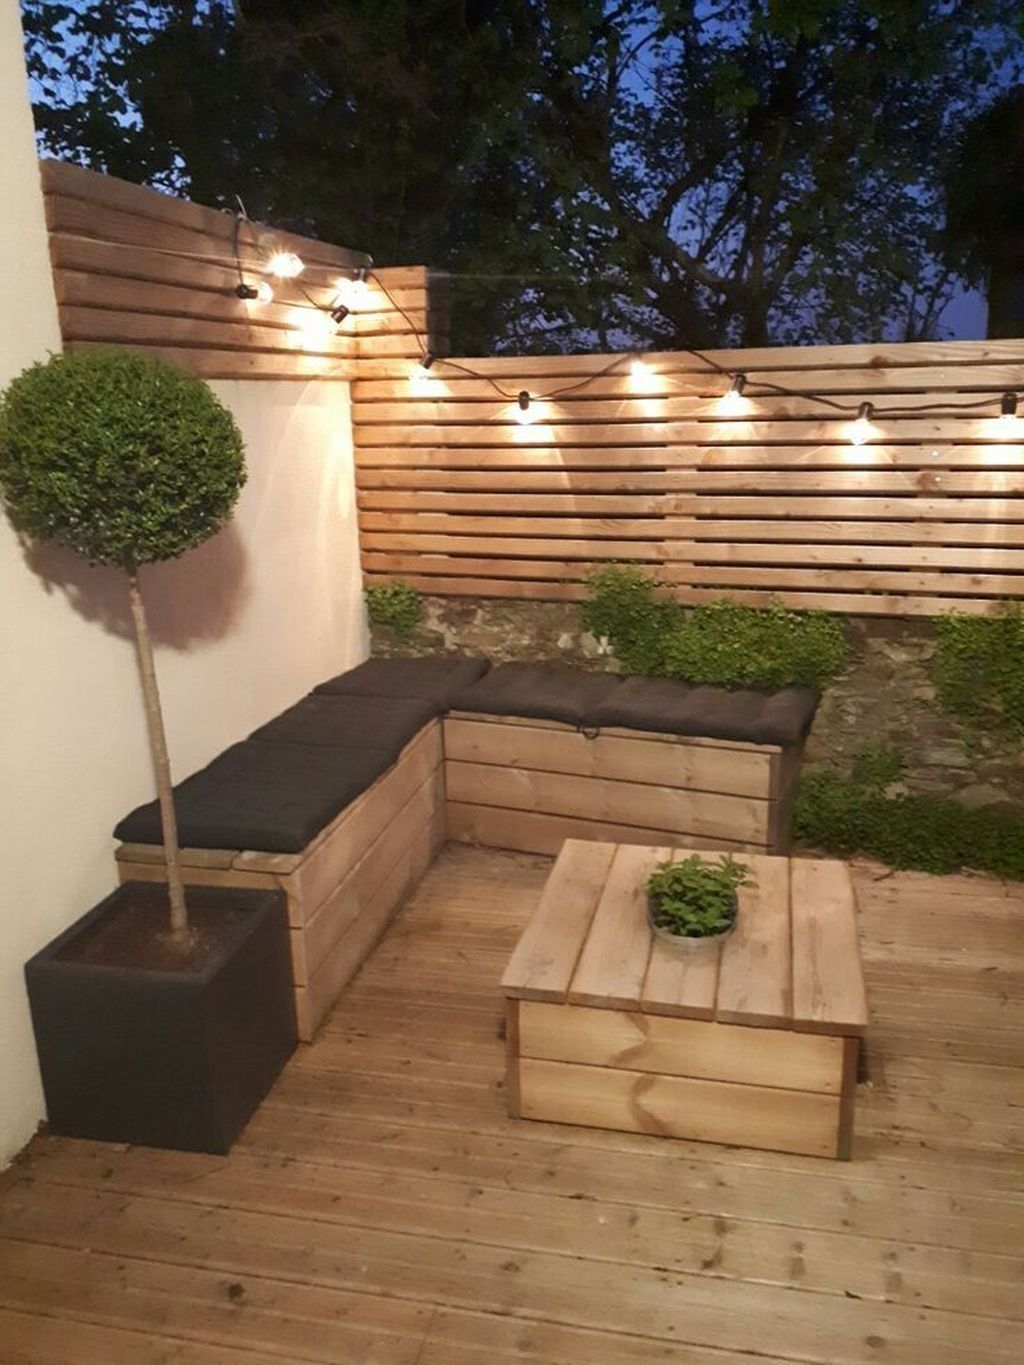 30 amazing wood terrace design ideas for this summer on modern deck patio ideas for backyard design and decoration ideas id=98806